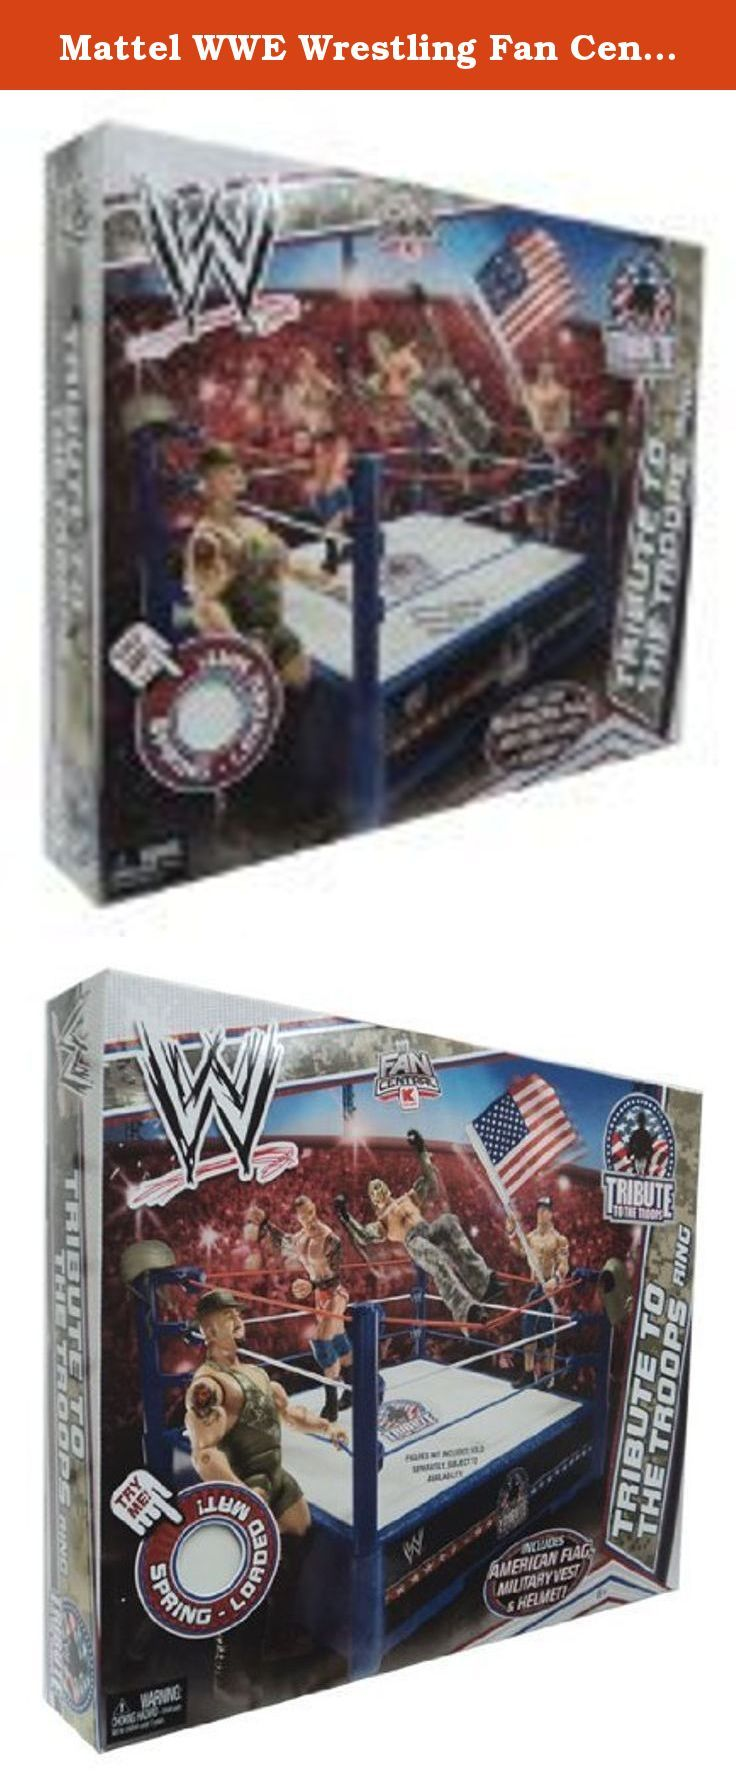 Mattel WWE Wrestling Fan Central Exclusive Tribute To The Troops Ring Includes American Flag Military Vest Helmet!. It's shipped off from Japan.